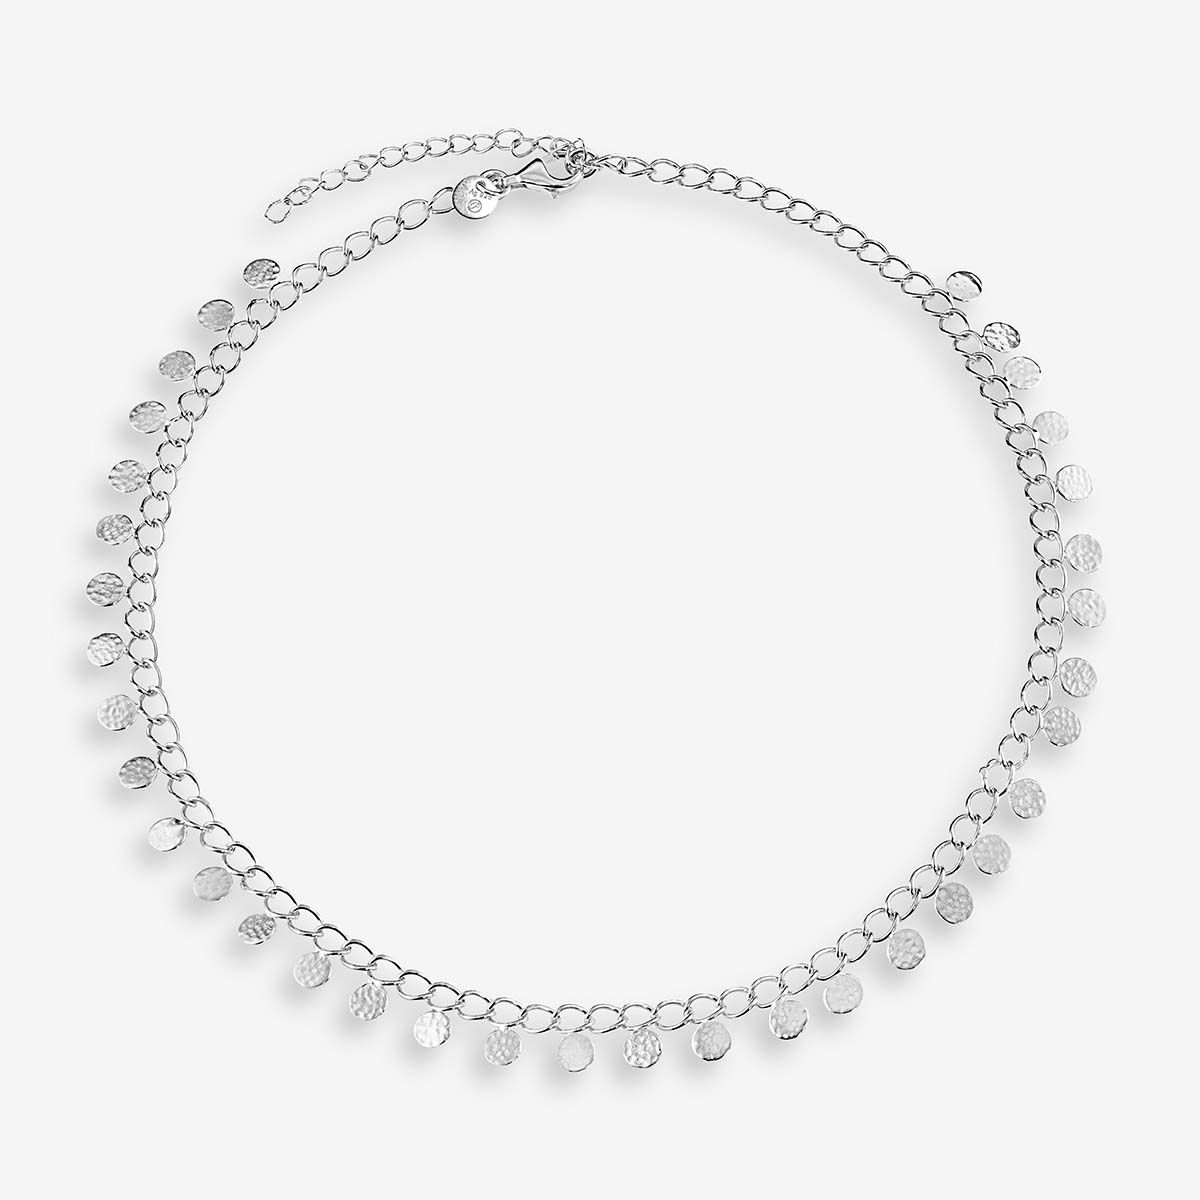 Coin necklace - Halsketten - Silber